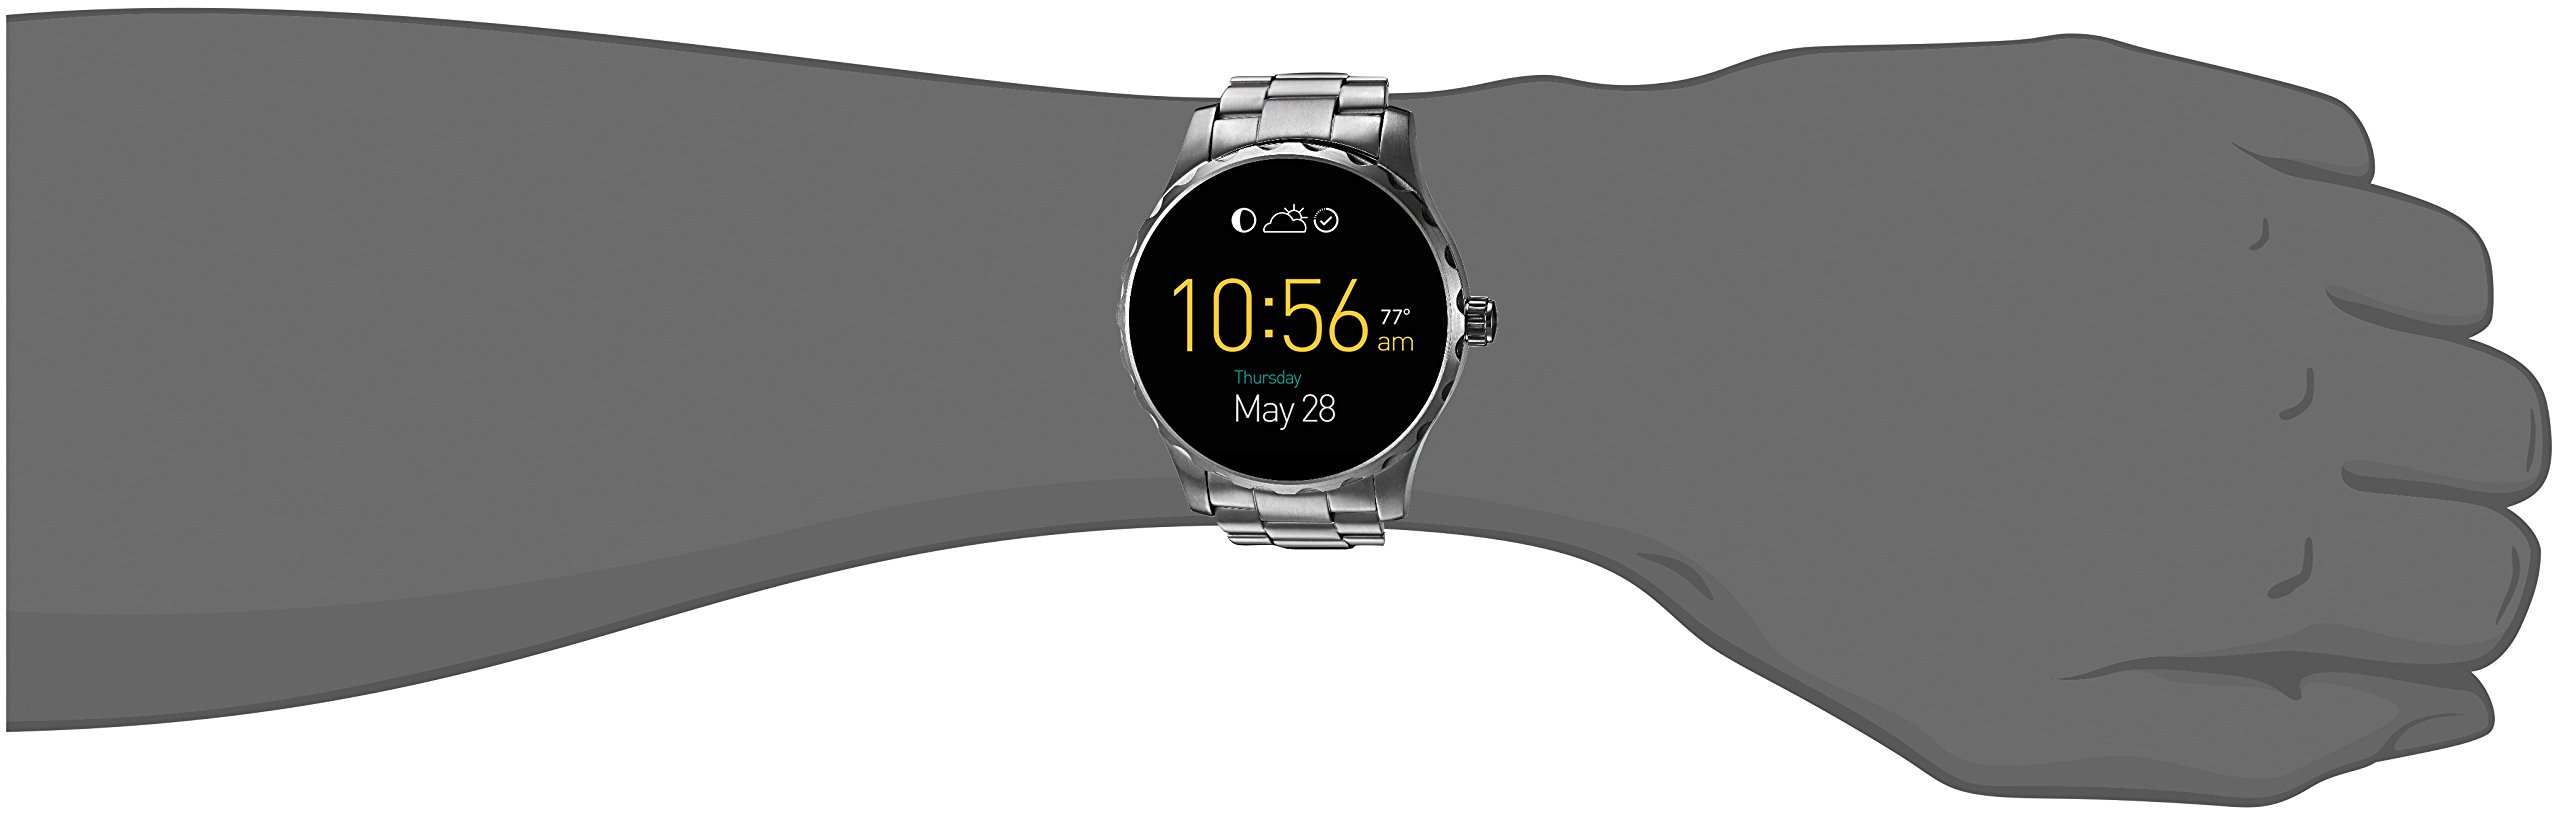 Fossil Q Marshal Gen 2 Stainless Steel Touchscreen Smartwatch FTW2109 by Fossil (Image #4)